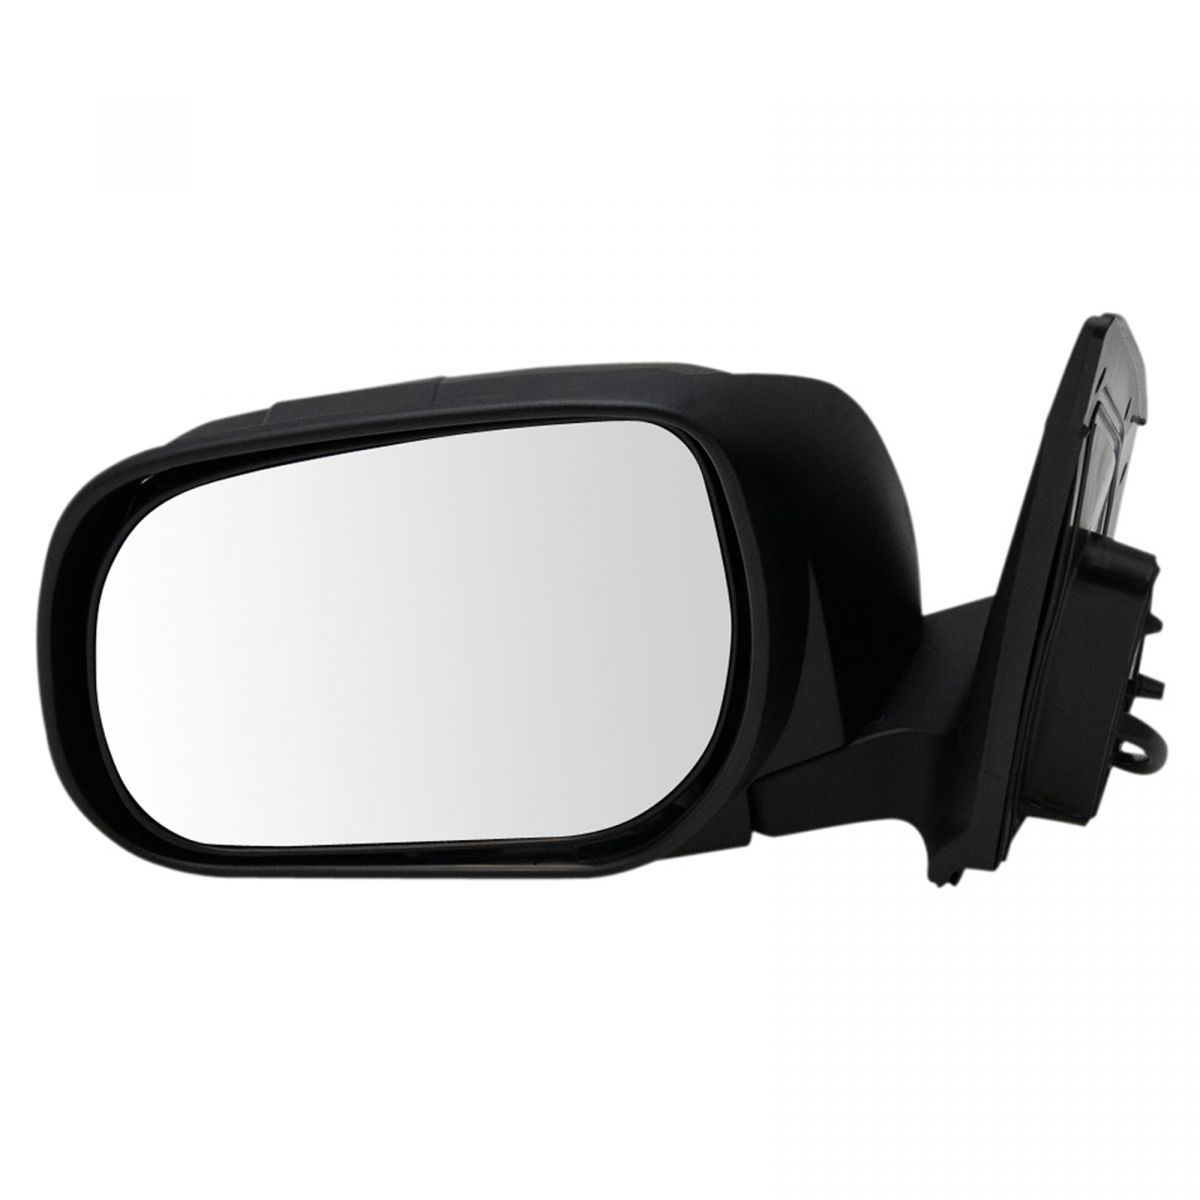 Power Mirror Left LH Driver Side for 05-10 Toyota Avalon